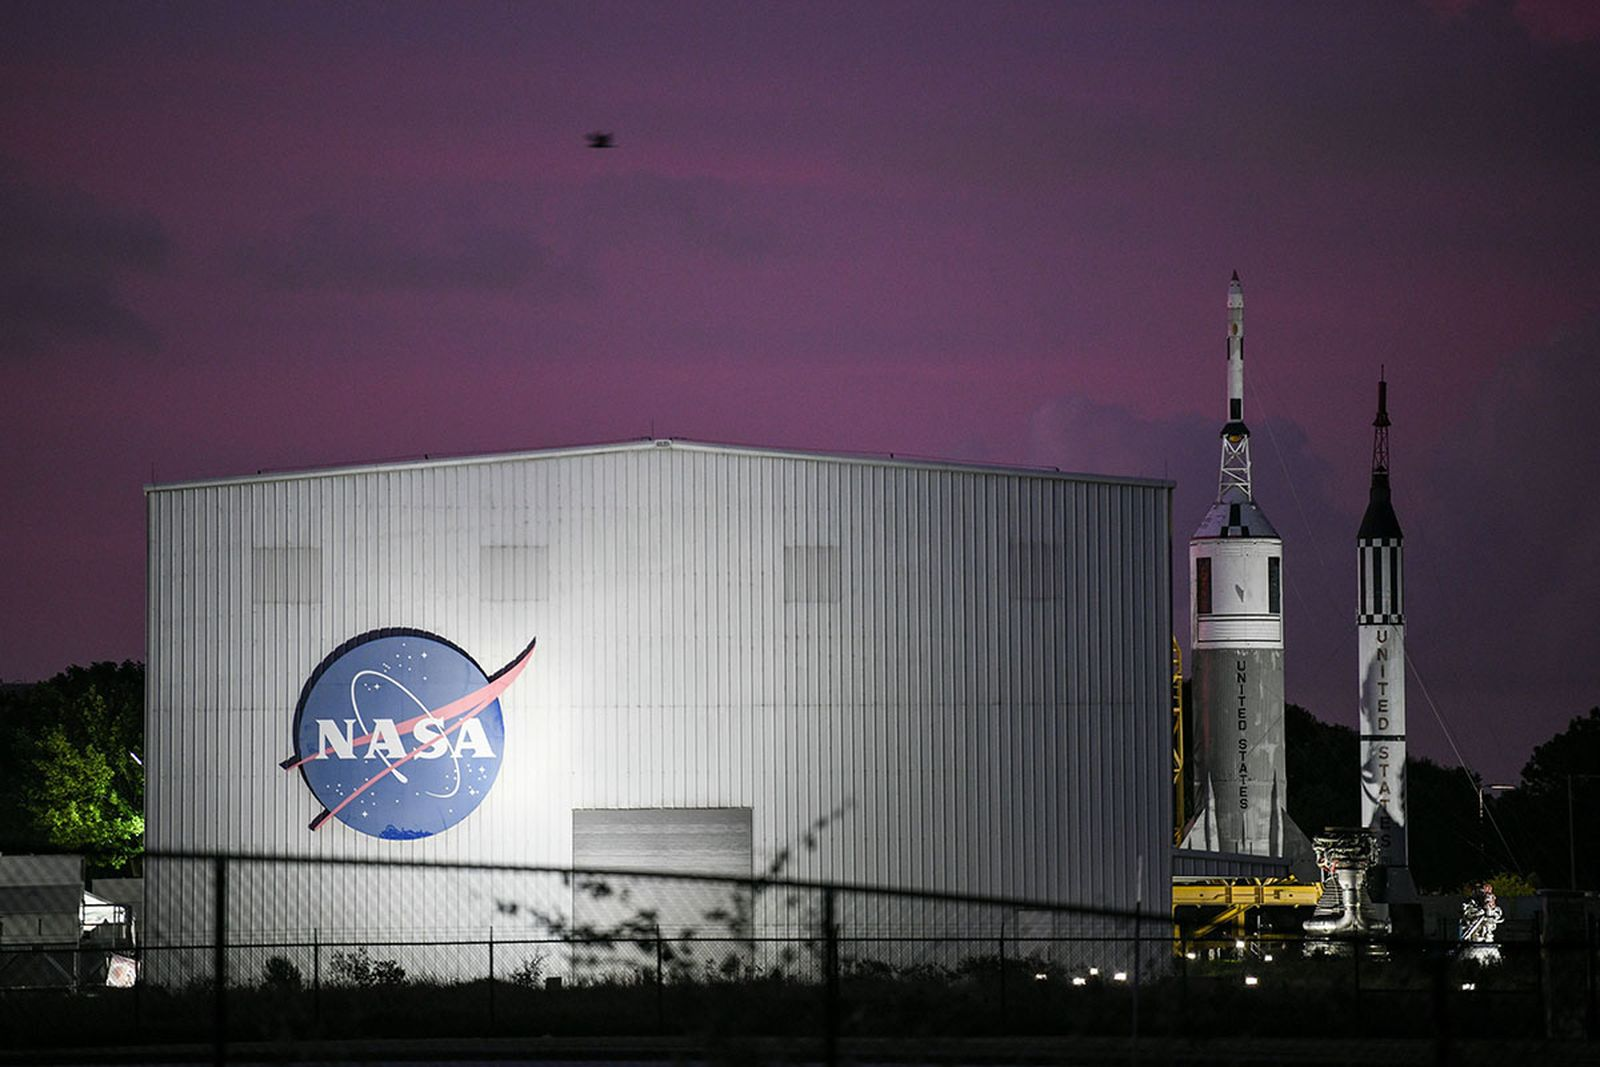 NASA's logo is seen at Rocket Park during an Apollo 11 50th anniversary celebration